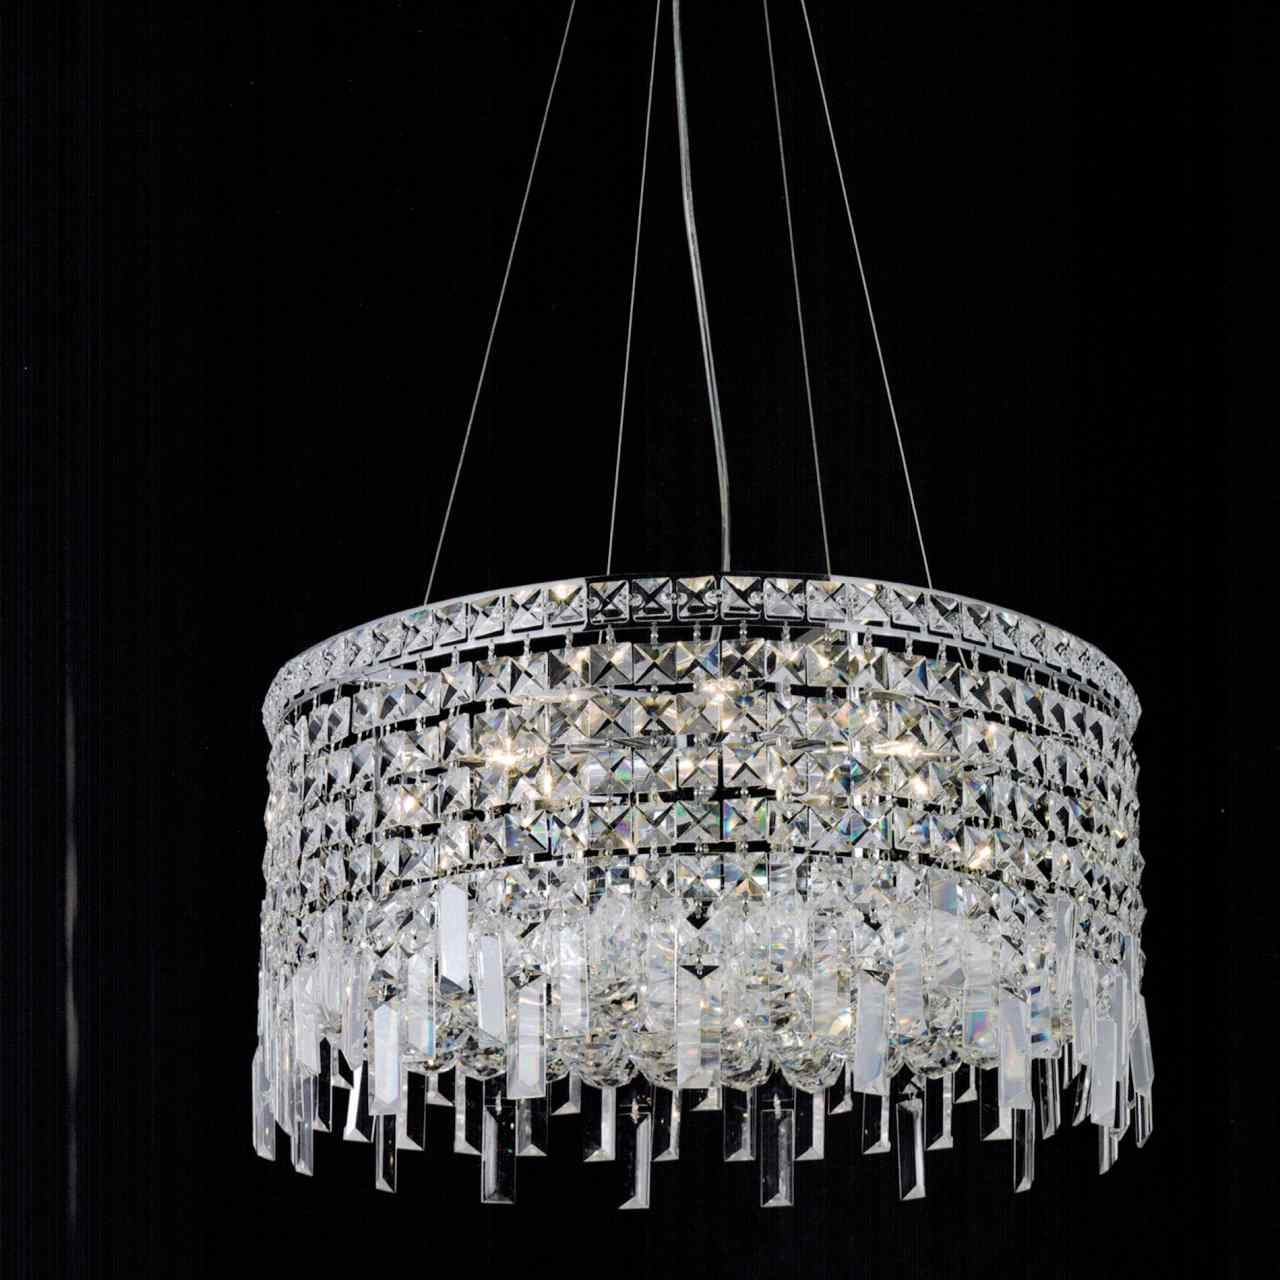 Brizzo Lighting Stores 16 Bossolo Transitional Crystal Round Pertaining To Chrome And Crystal Chandeliers (Image 7 of 25)